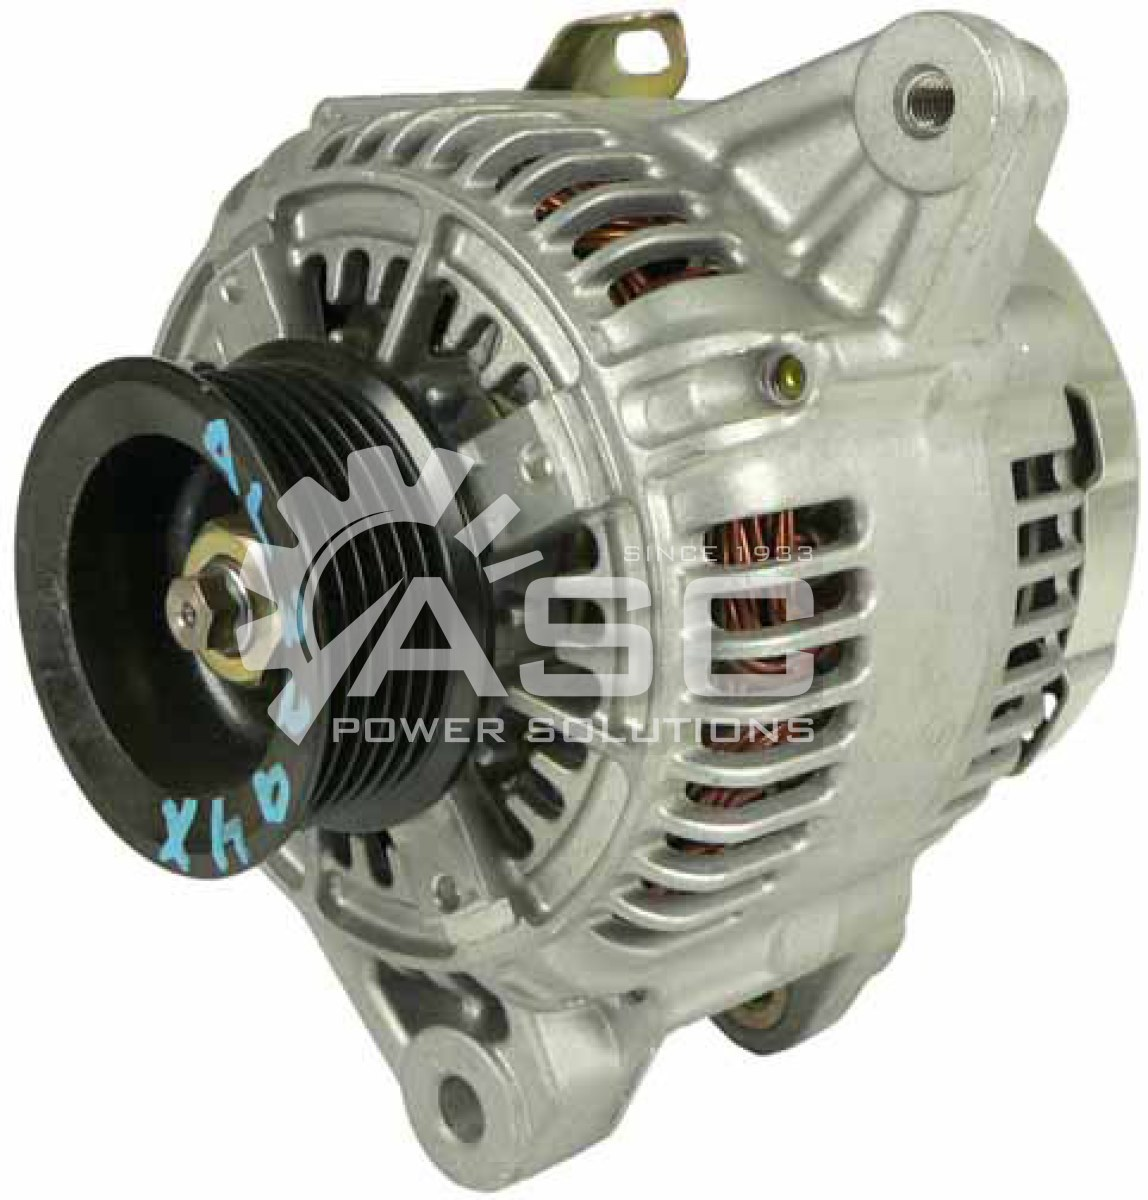 A521370_ASC, Alternator, 12V, 100 Amp, IR, IF, CW, S6, 57MM, DENSO, Reman